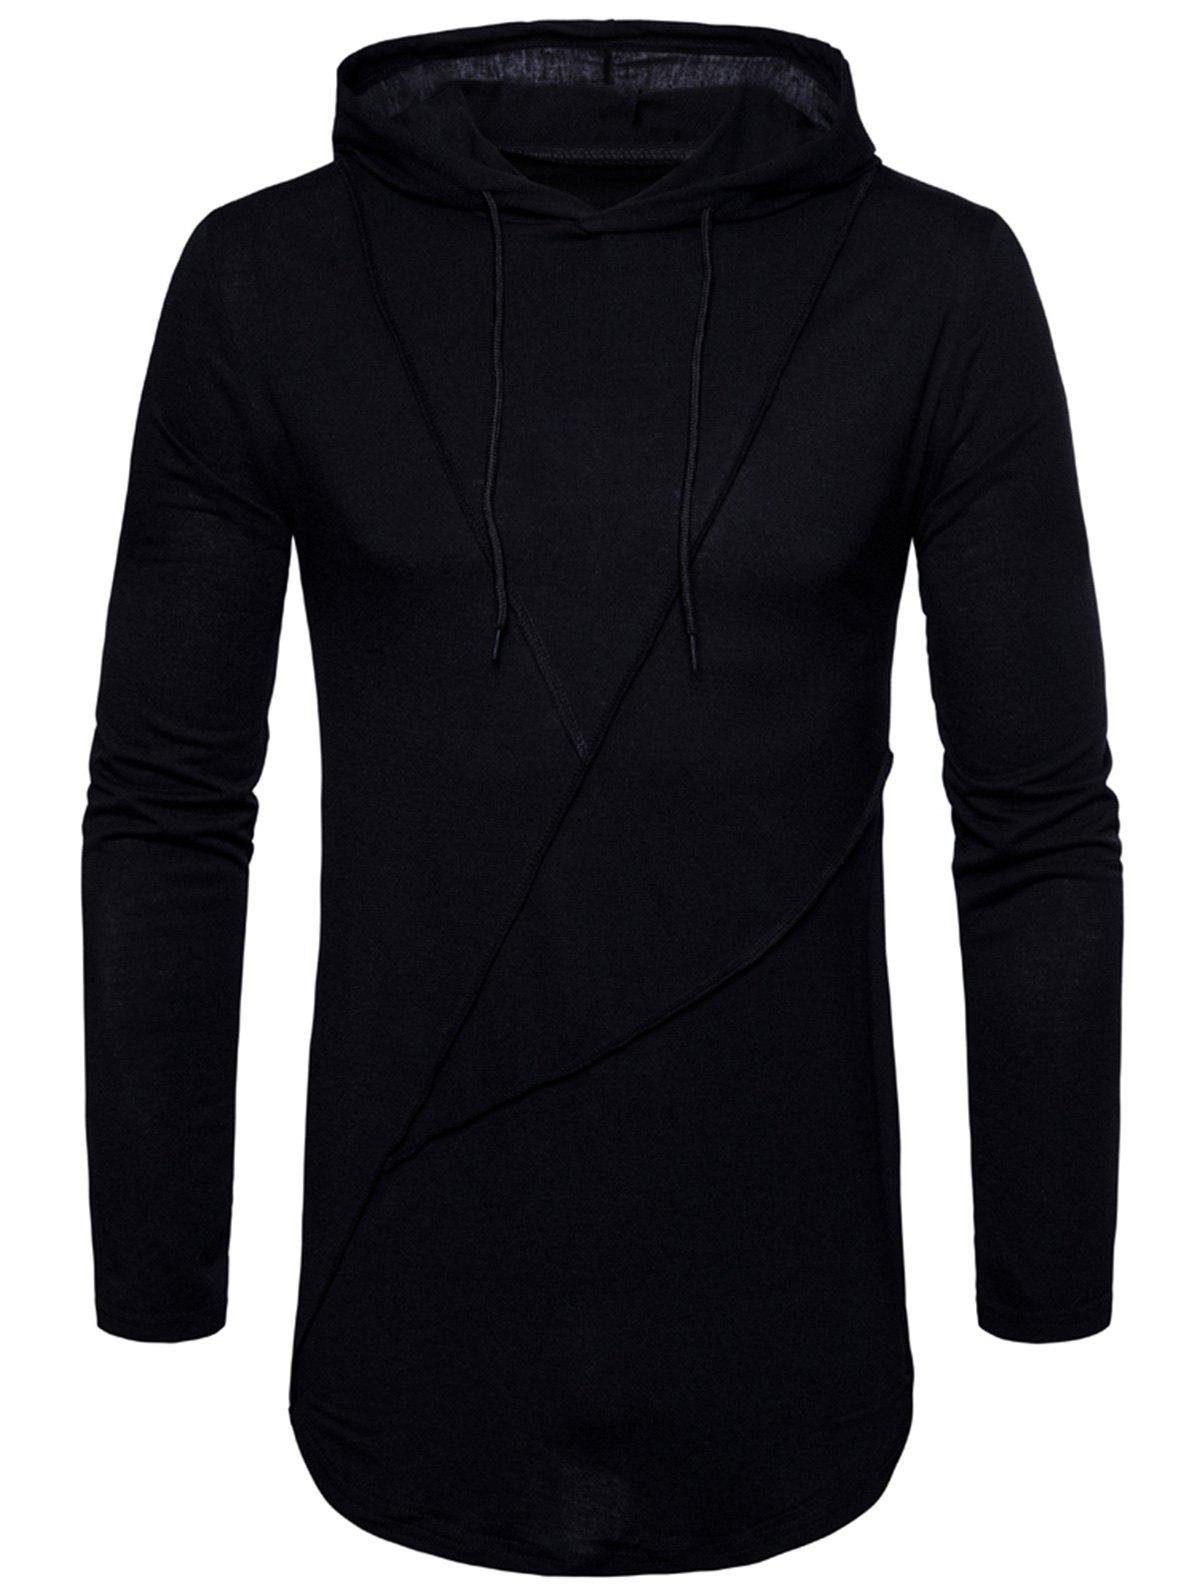 Zip Hem Solid Color Long Sleeve Hooded T-shirt - BLACK 2XL